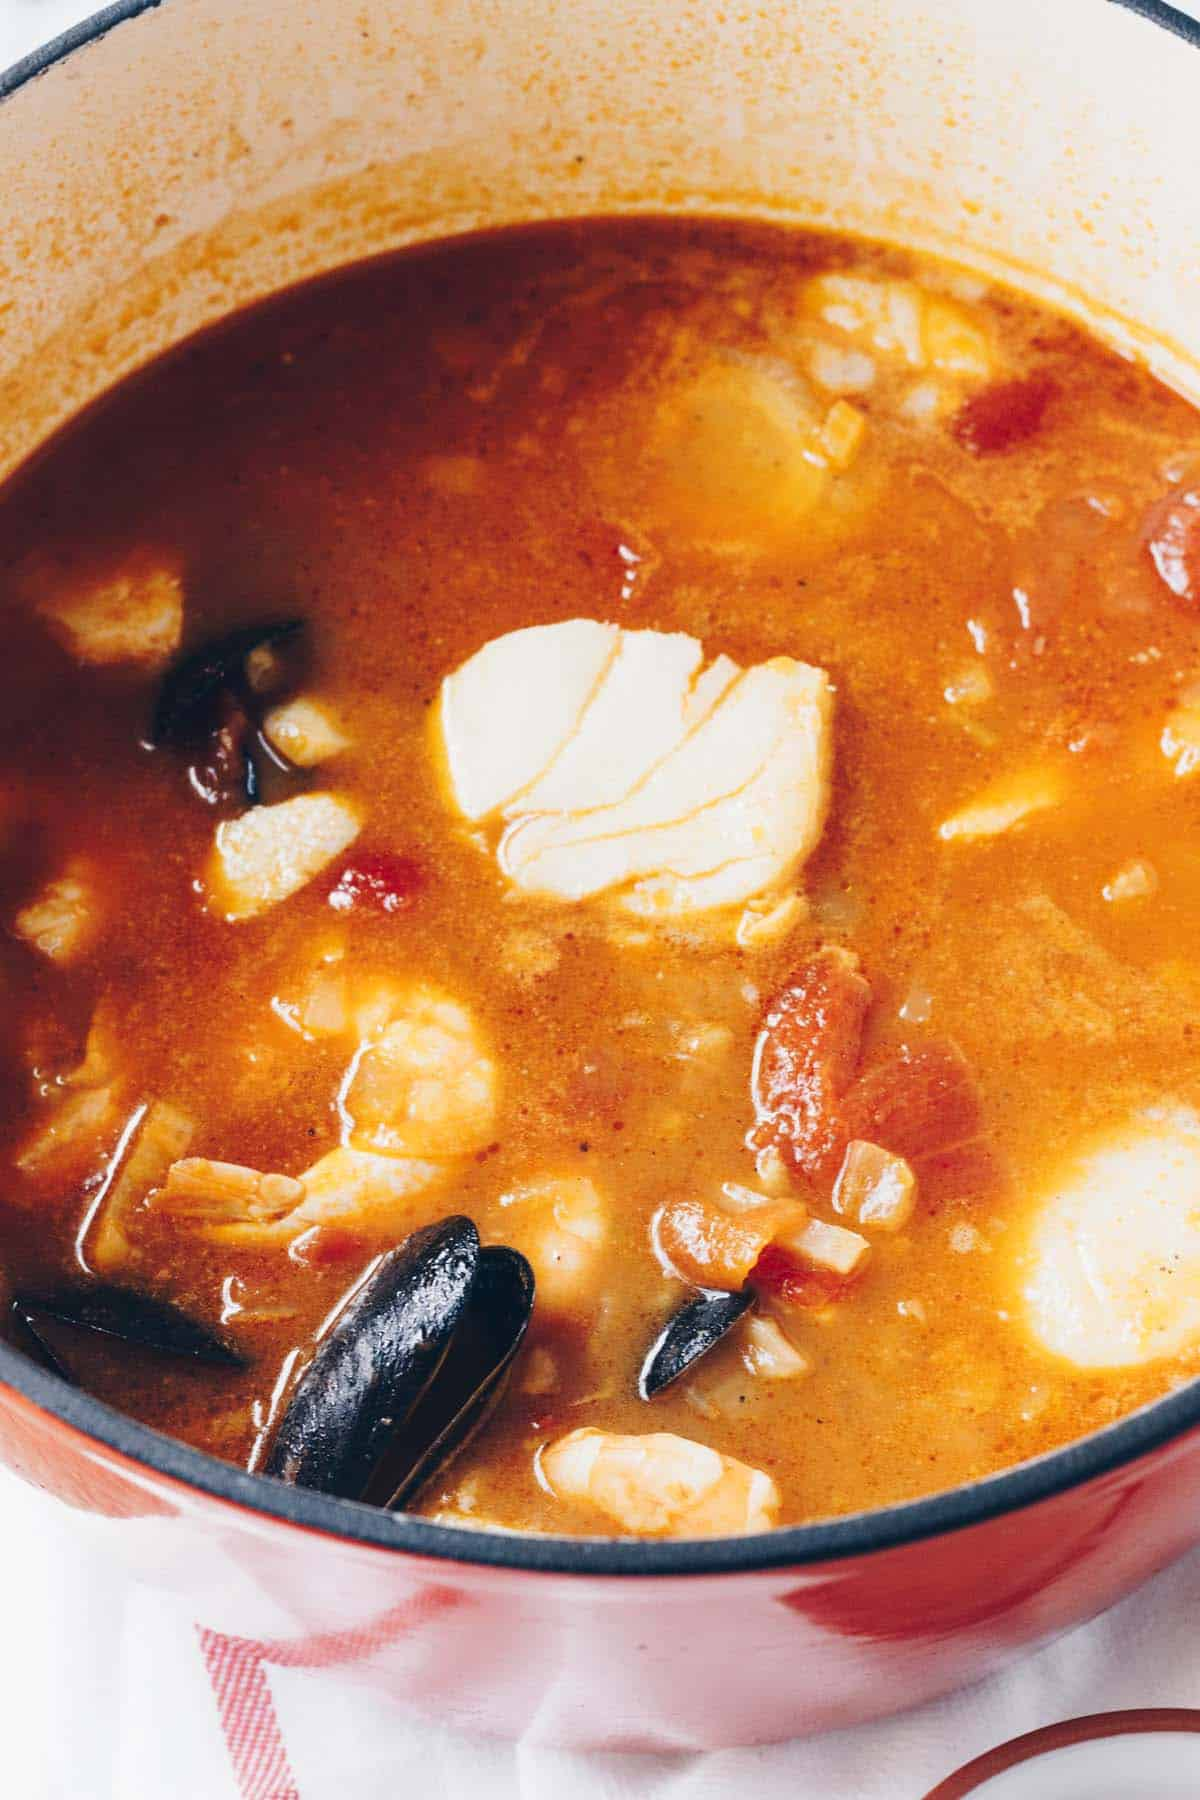 This Mixed Seafood Stew is ready in just 30 minutes and is packed with scallops, shrimp, cod, and mussels! This is one nutrient packed soup!